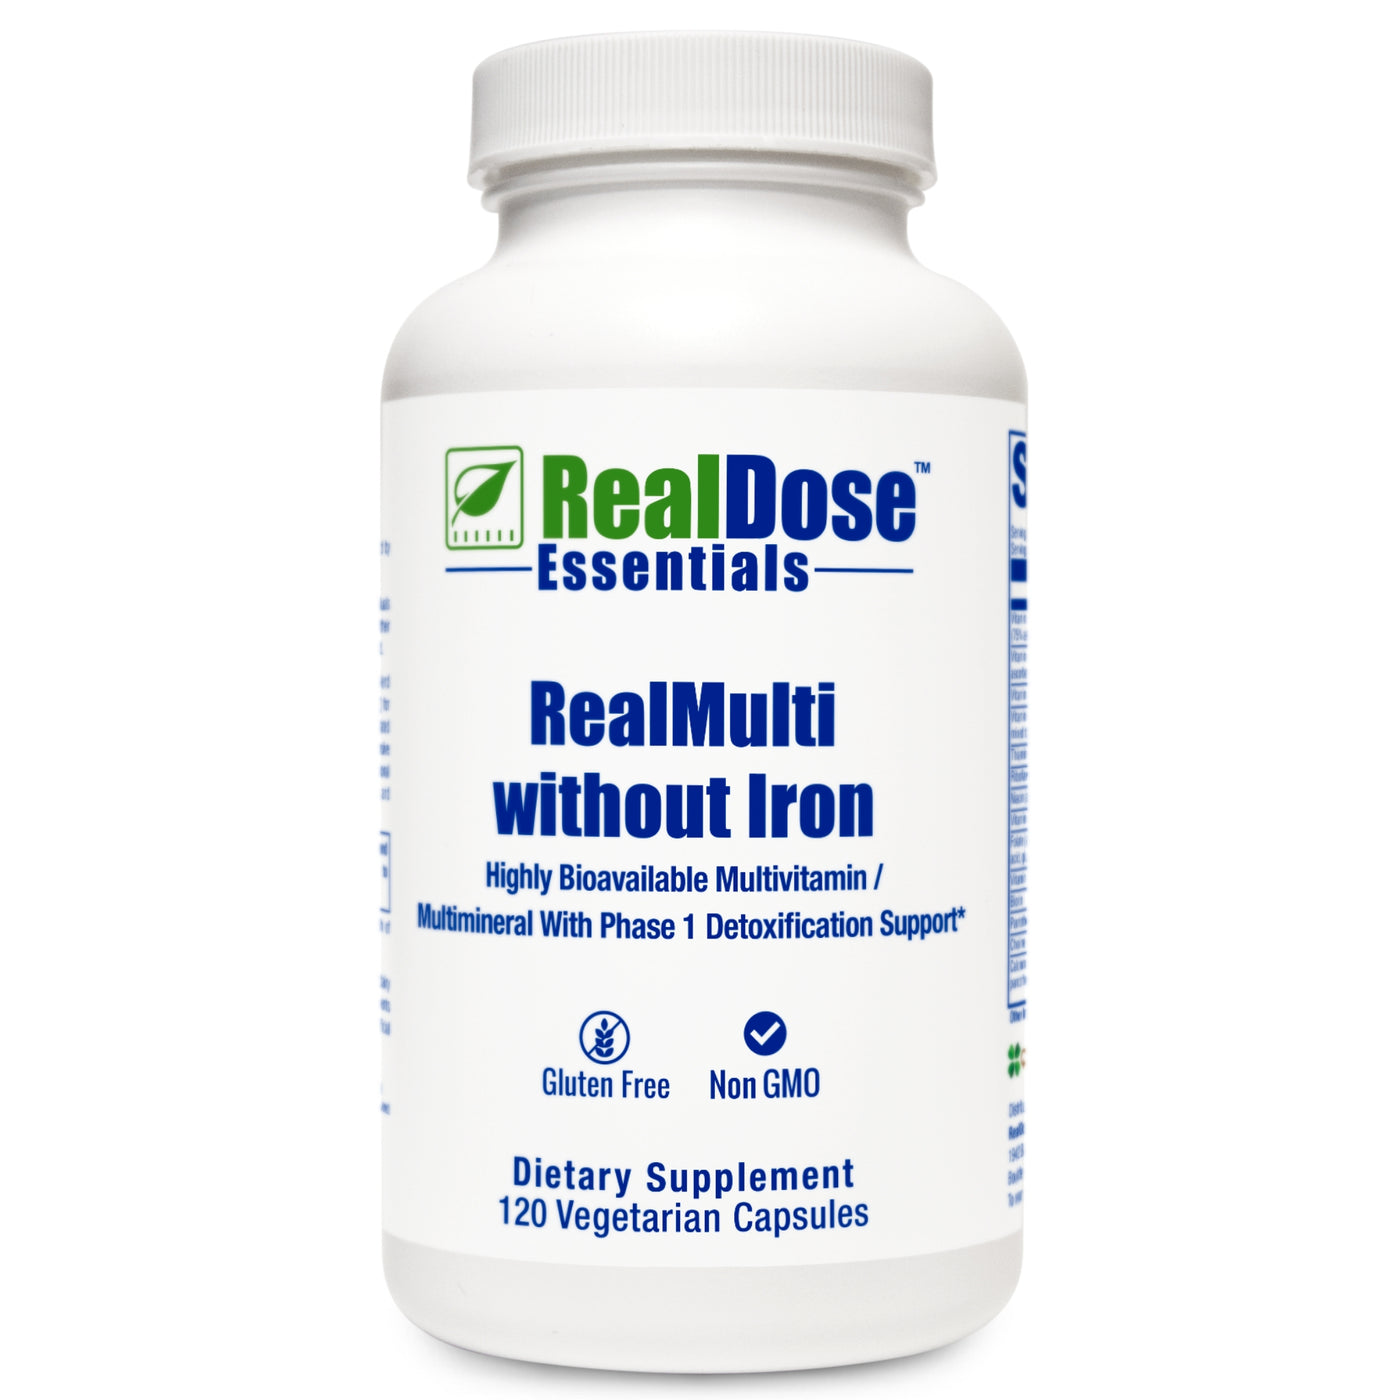 RealMulti without Iron